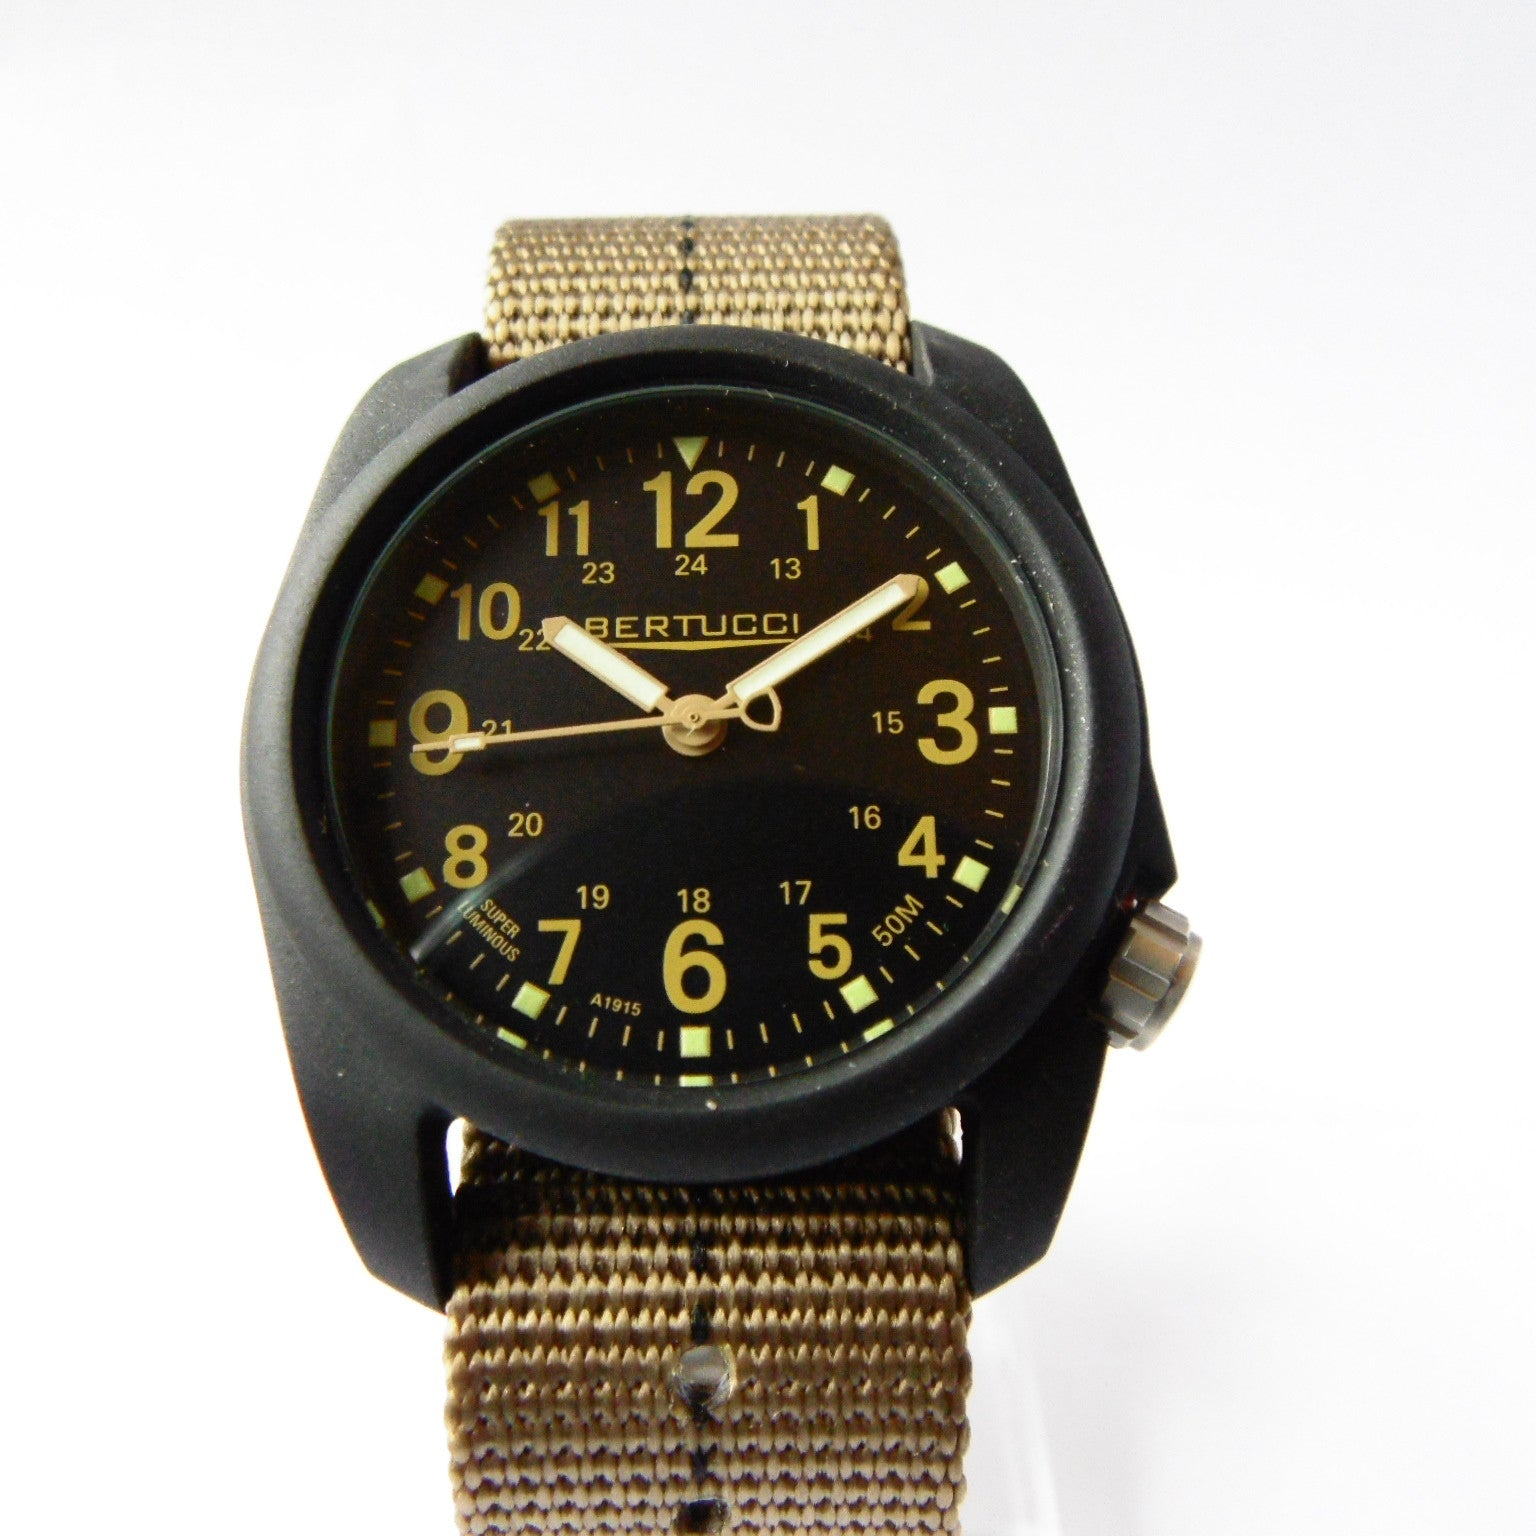 Bertucci DX3 Plus Field Resin Watch (Dash-Striped Desert Nylon Strap) 11041 - Watchfinder General - UK suppliers of Russian Vostok Parnis Watches MWC G10  - 3